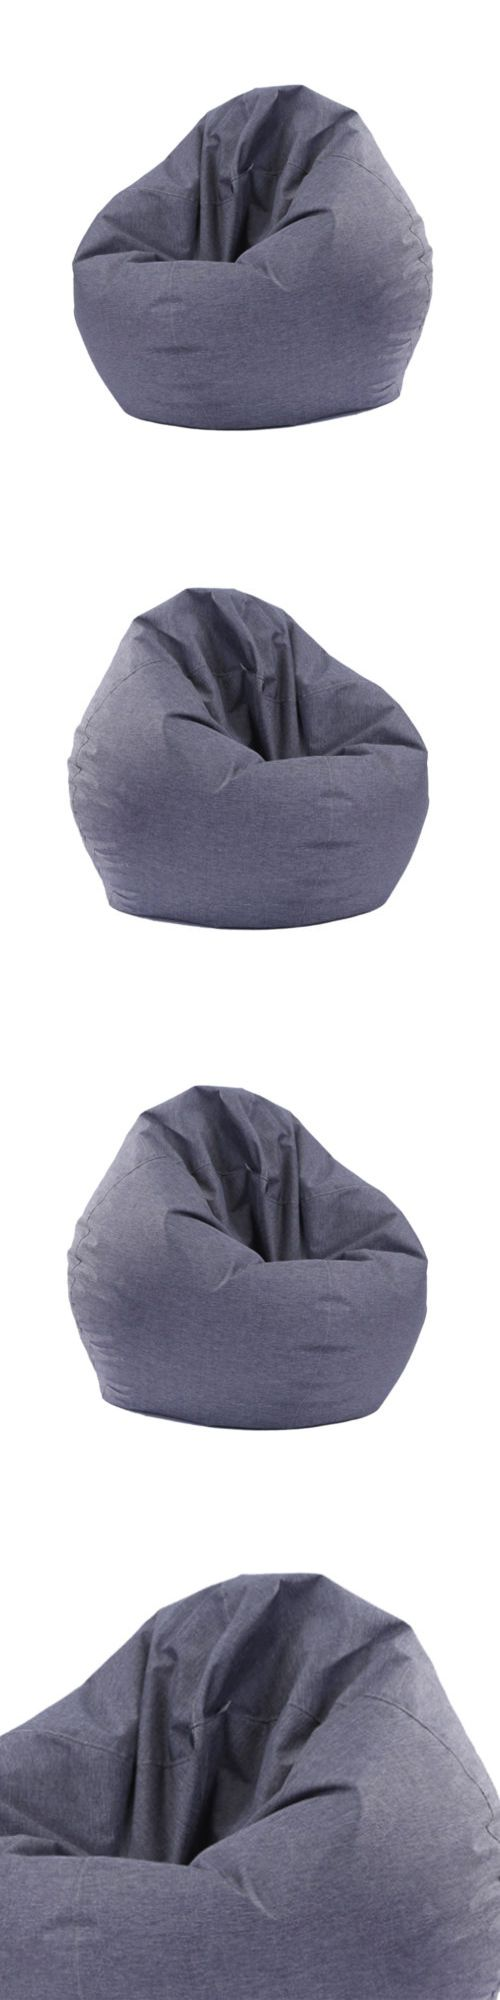 Adult Size Bean Bag Chair Bean Bags And Inflatables 48319 Adult Size Bean Bag Chair Cover